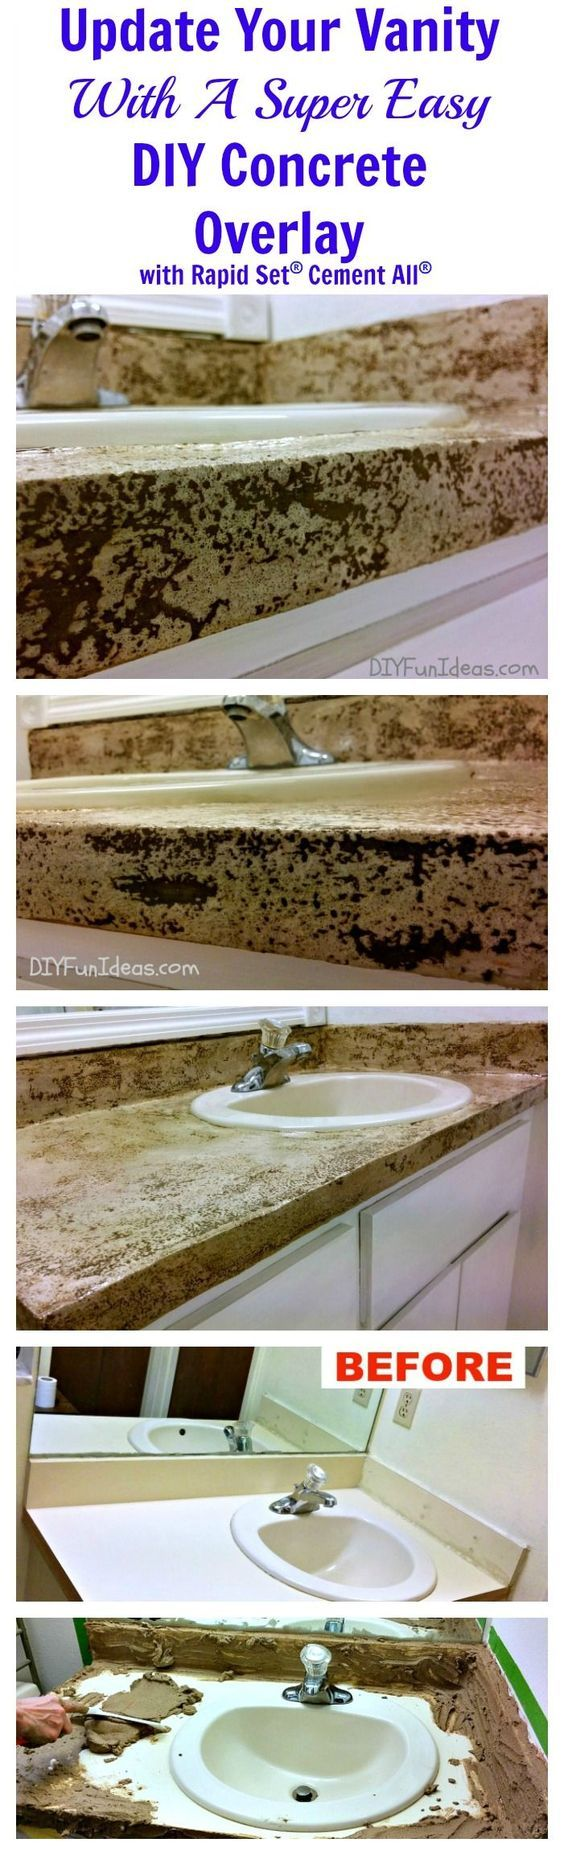 17 Best Ideas About Concrete Overlay On Pinterest